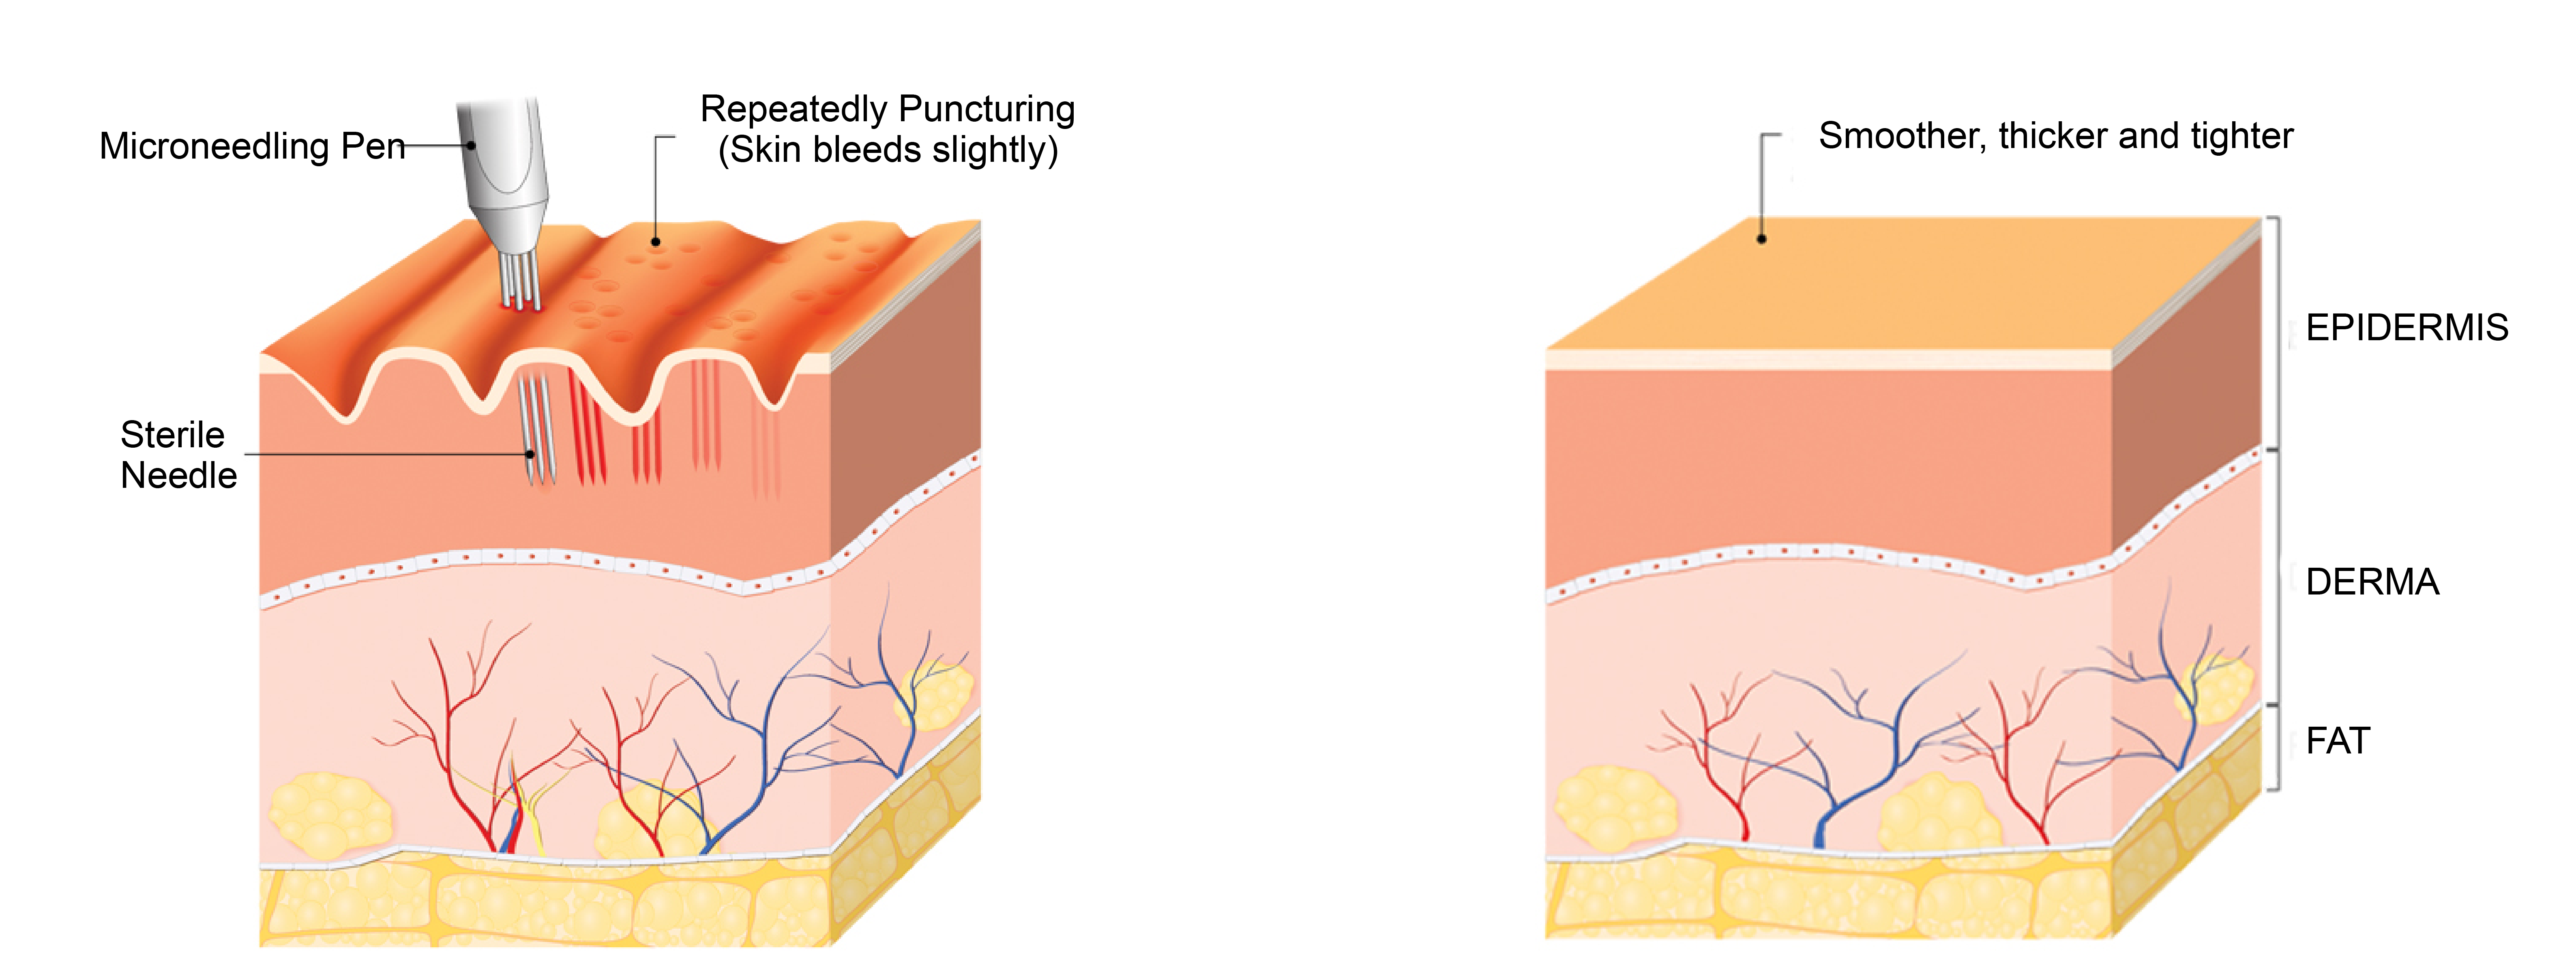 Microneedling Facial with Hyaluronic Acid